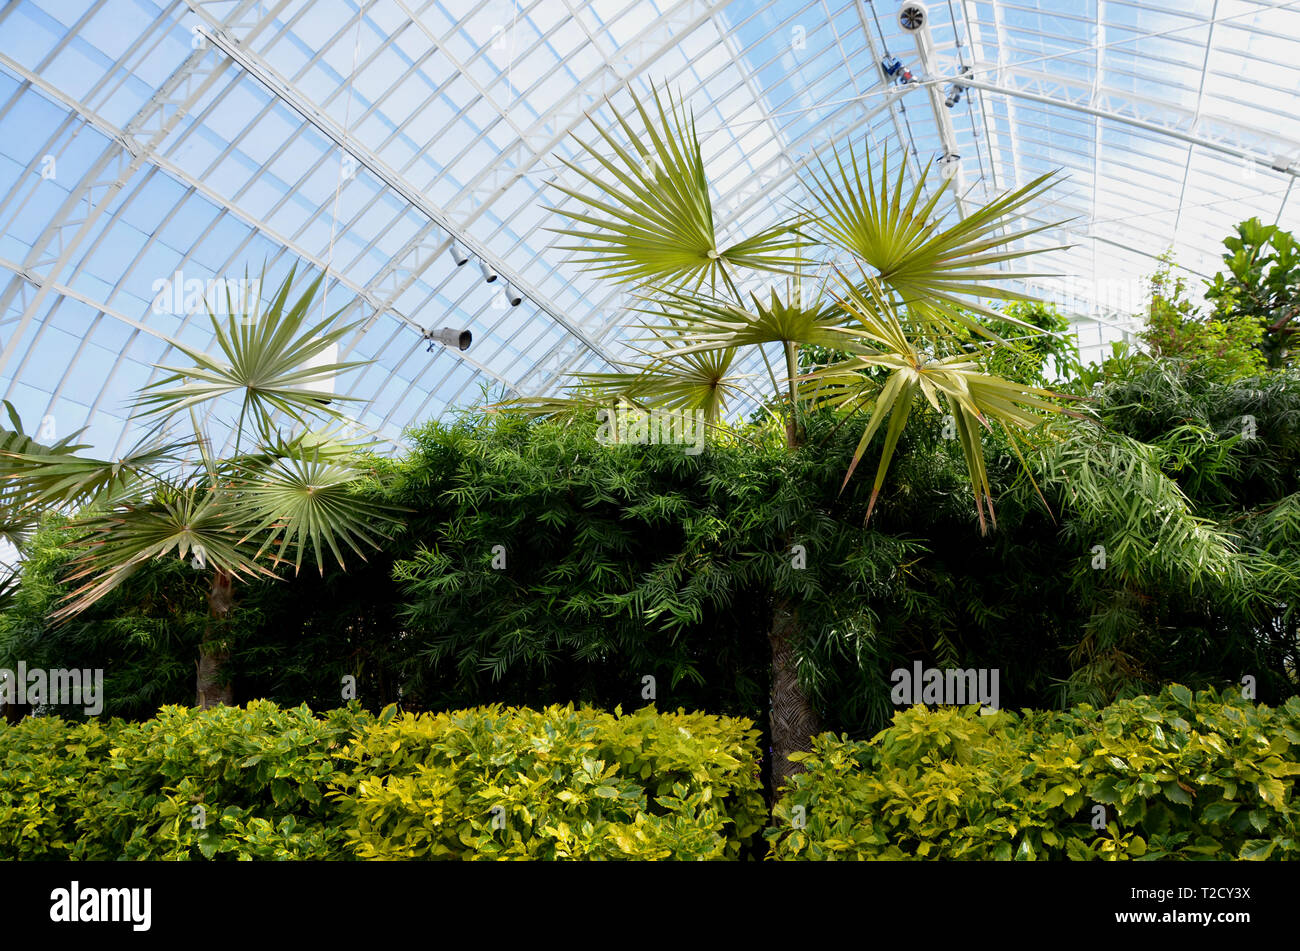 Botanical Garden Palm Trees and bushes Stock Photo